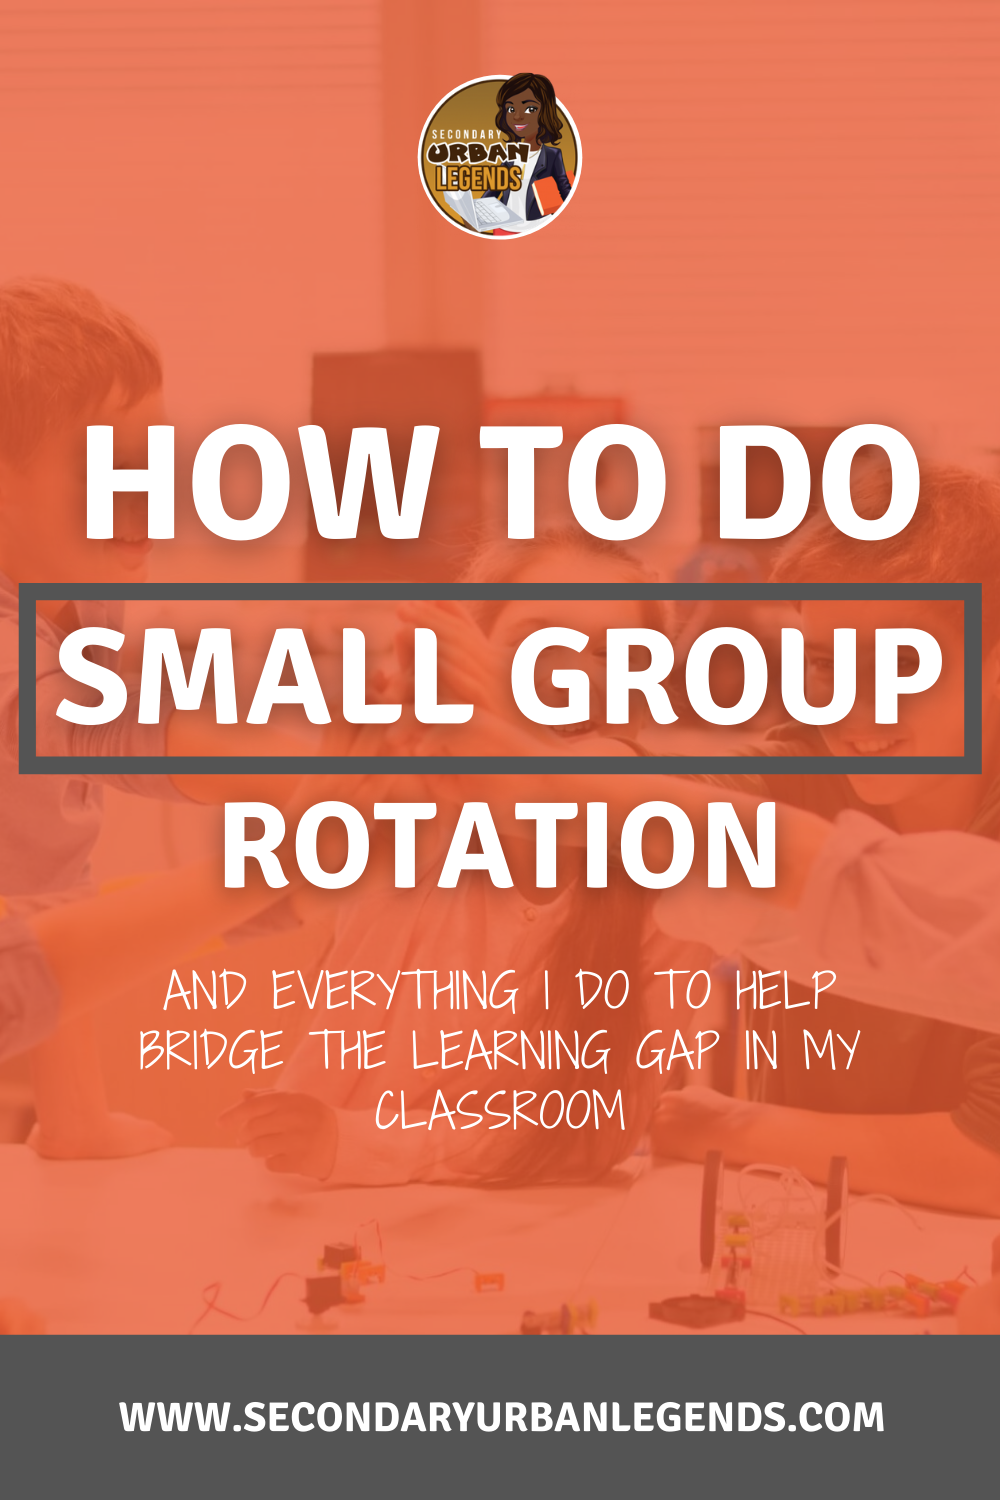 How To Do Small Group Rotation